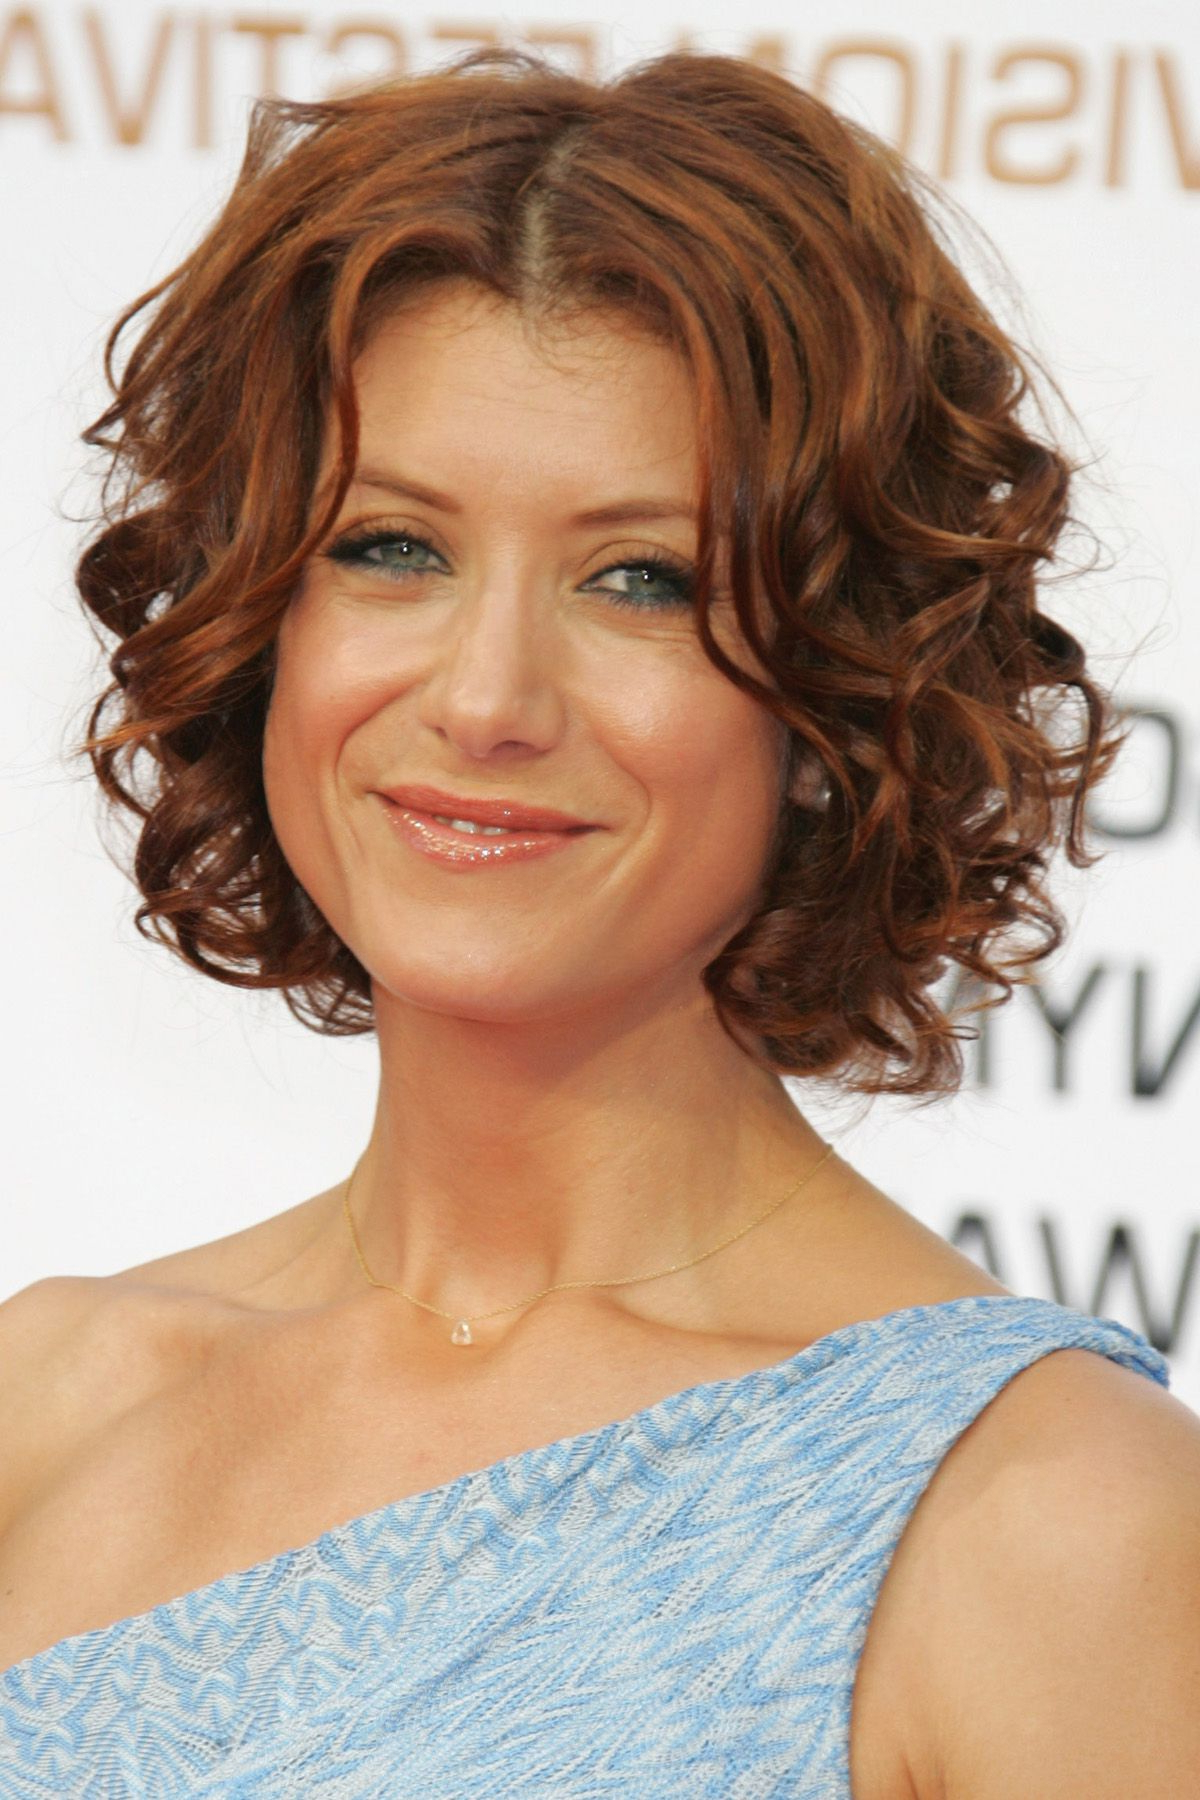 14 Best Short Curly Hairstyles For Women – Short Haircuts For Curly Hair With Short Bob For Curly Hairstyles (View 4 of 20)